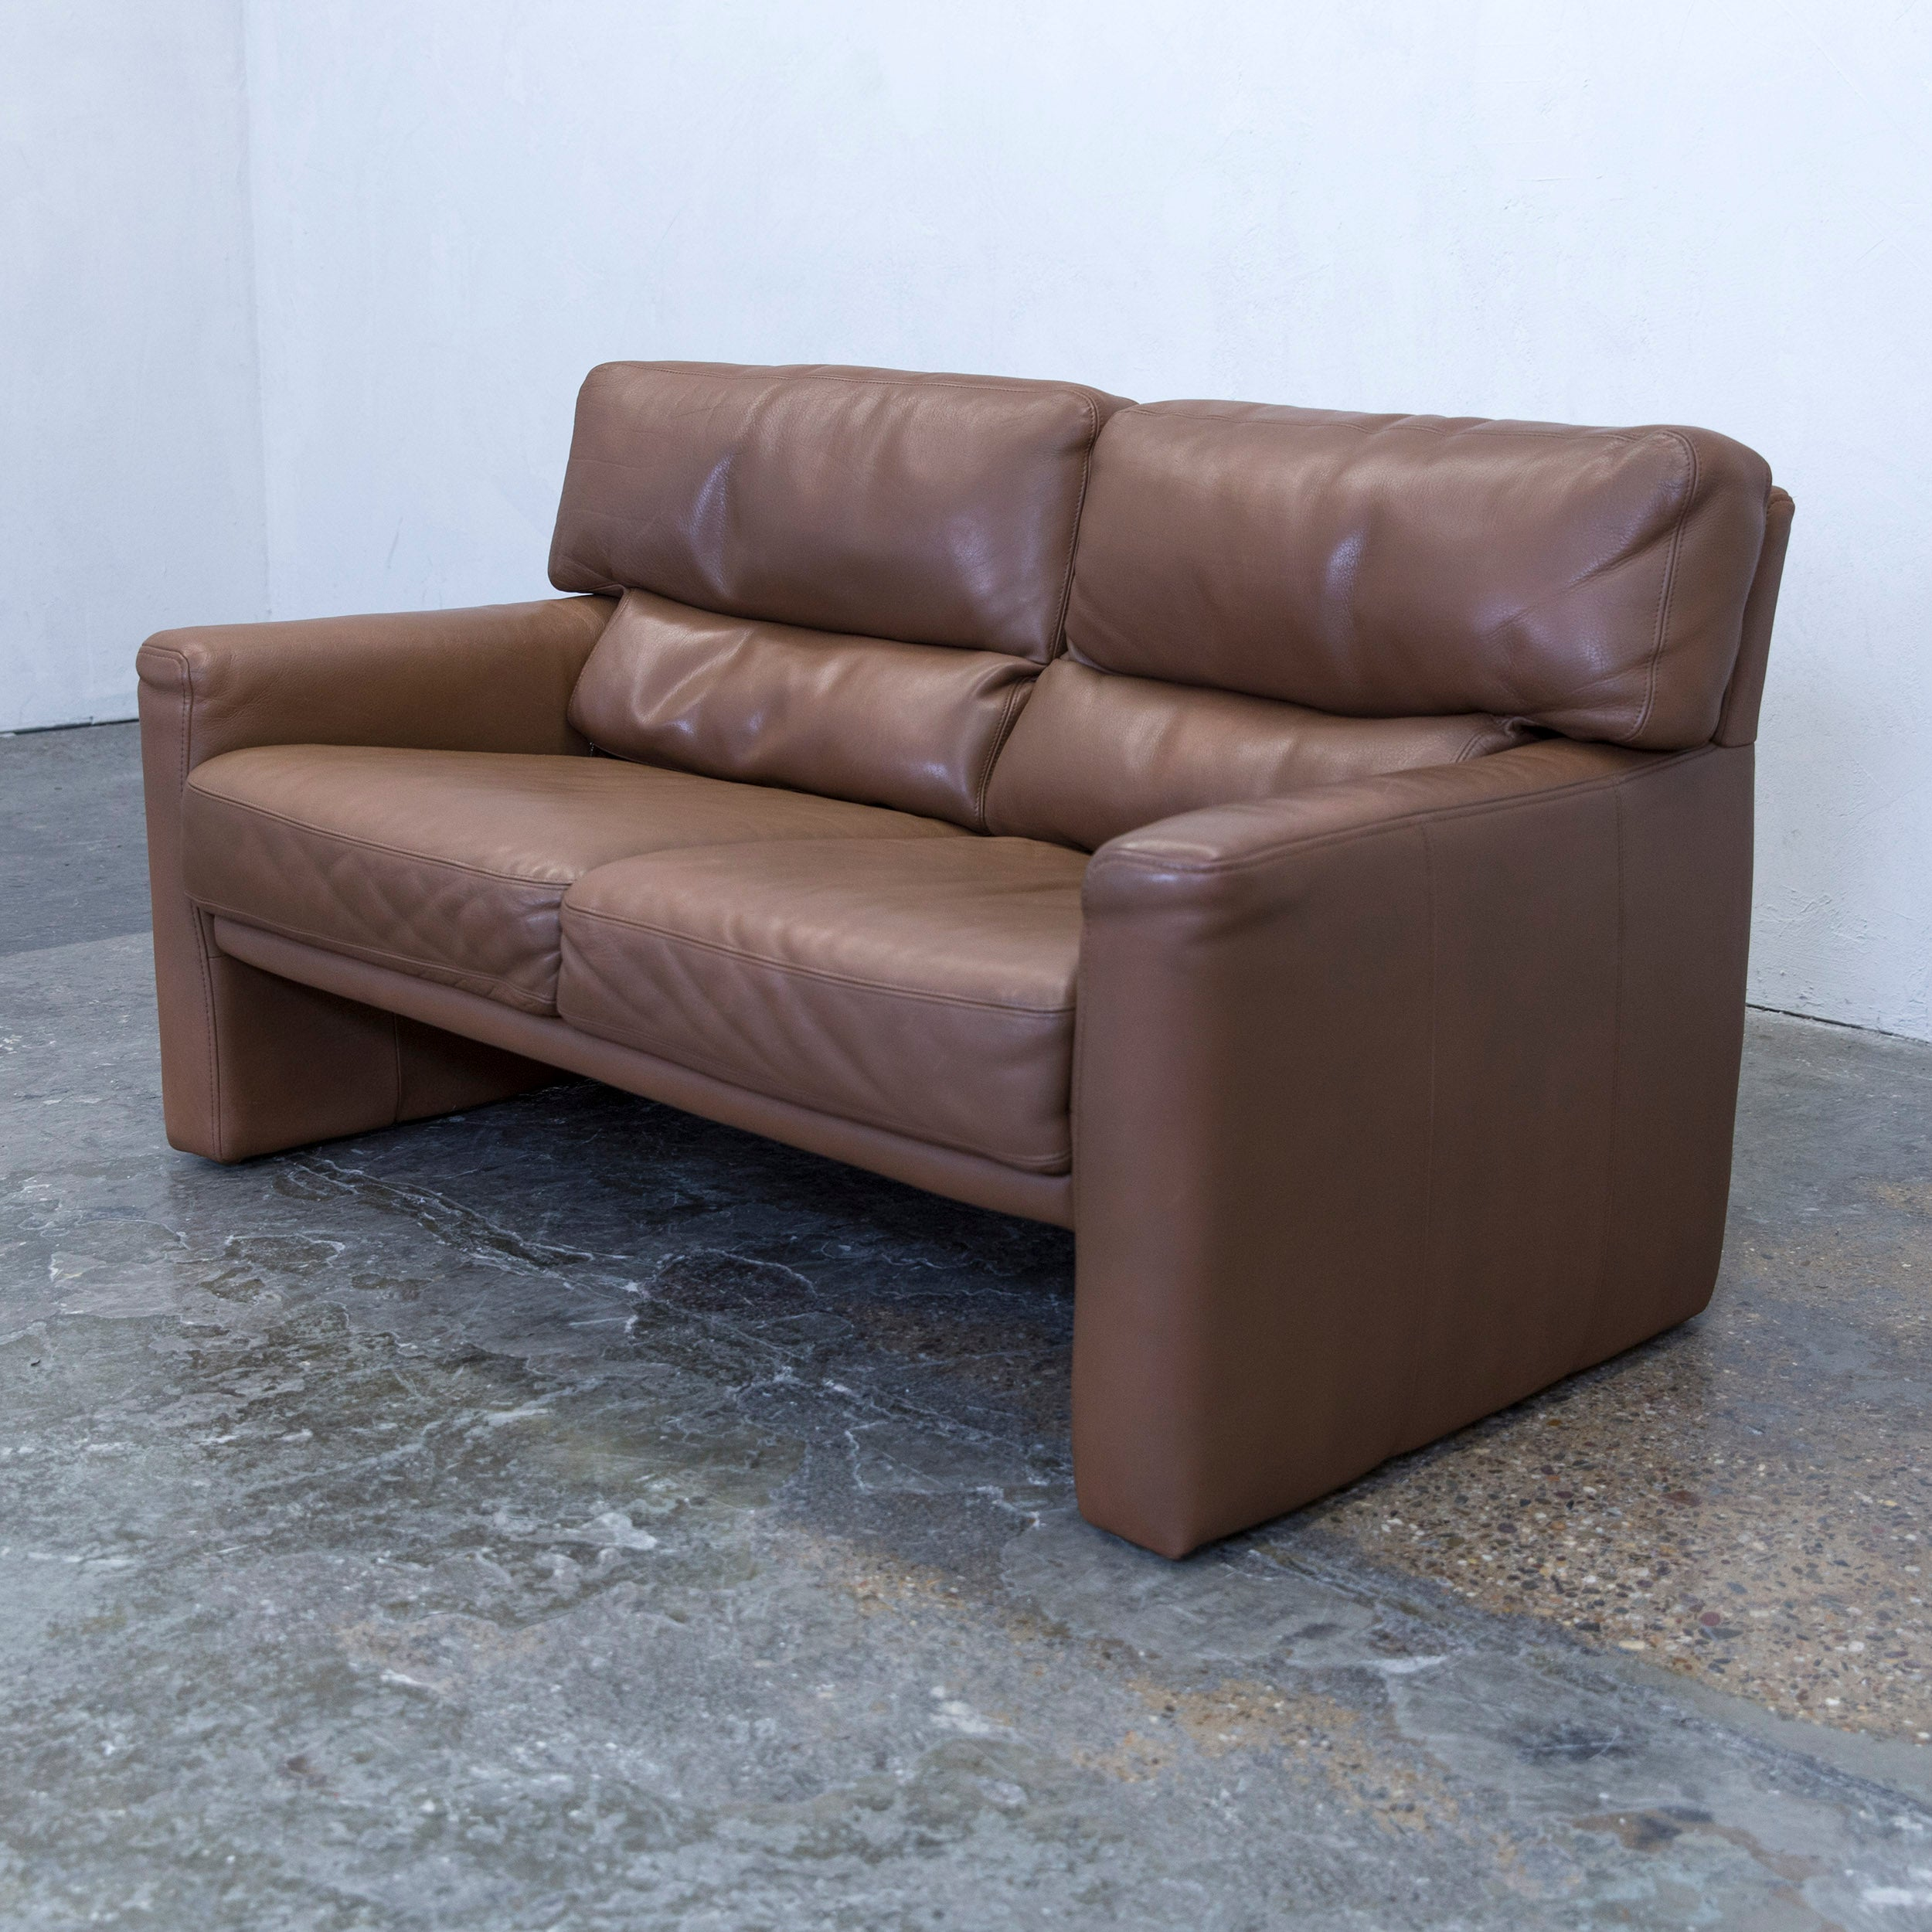 Bruhl And Sippold Designer Sofa Leather Brown Two Seat Couch Modern